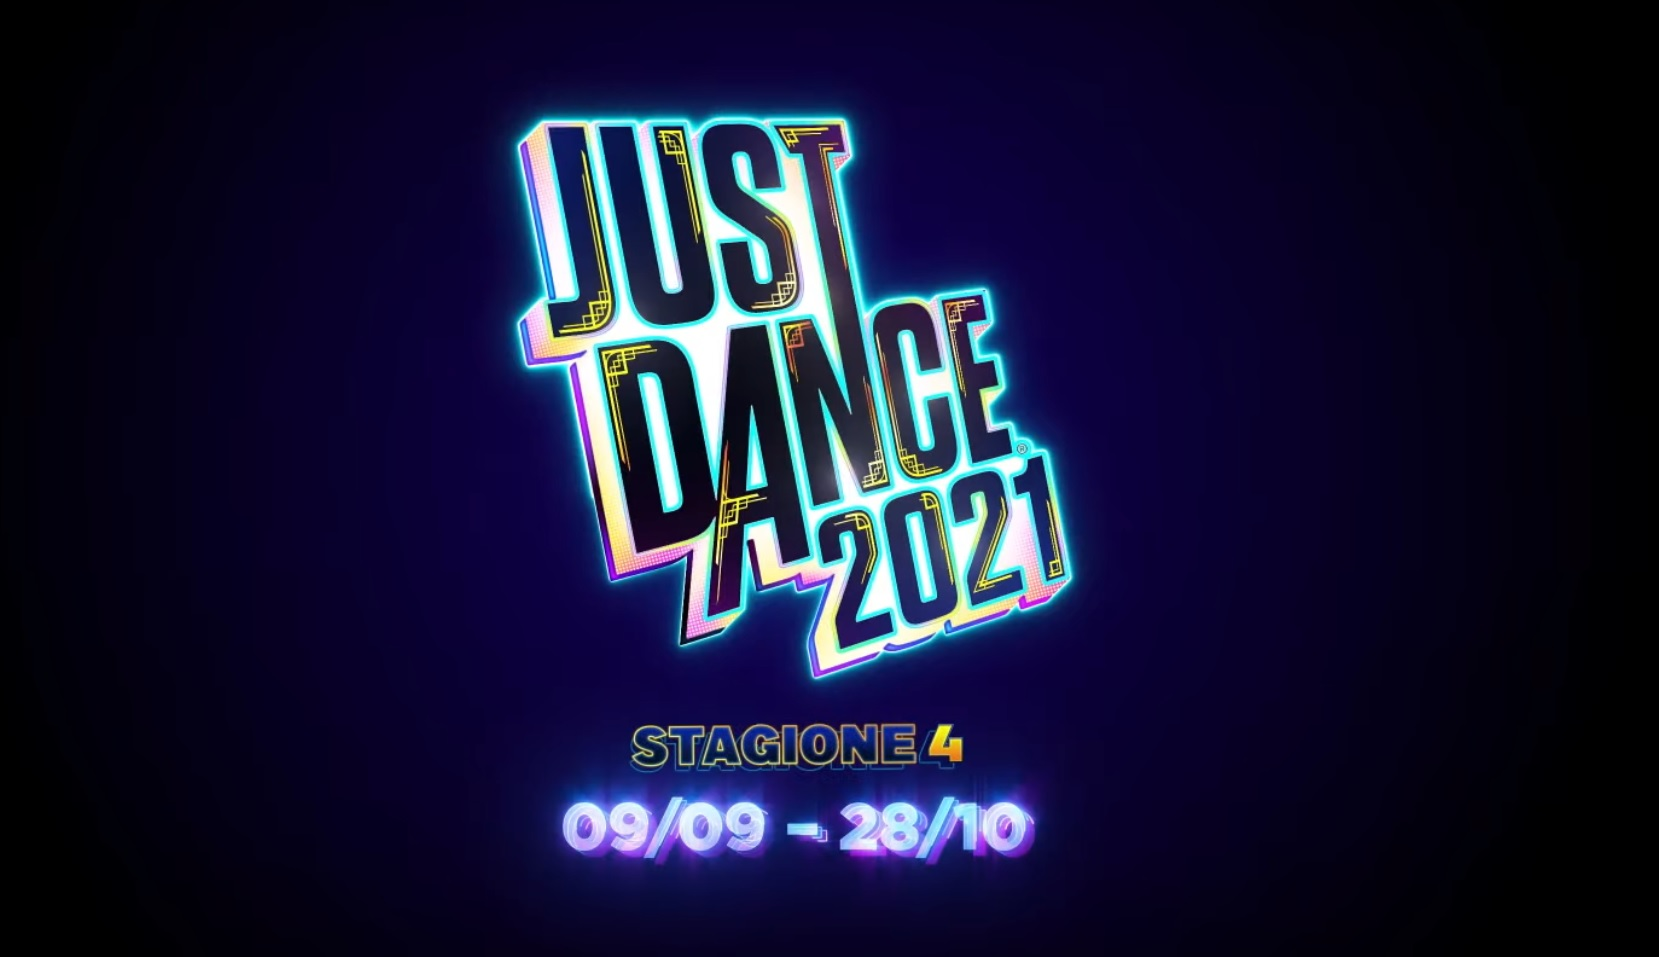 Just Dance 2021 stagione 4, The Traveler